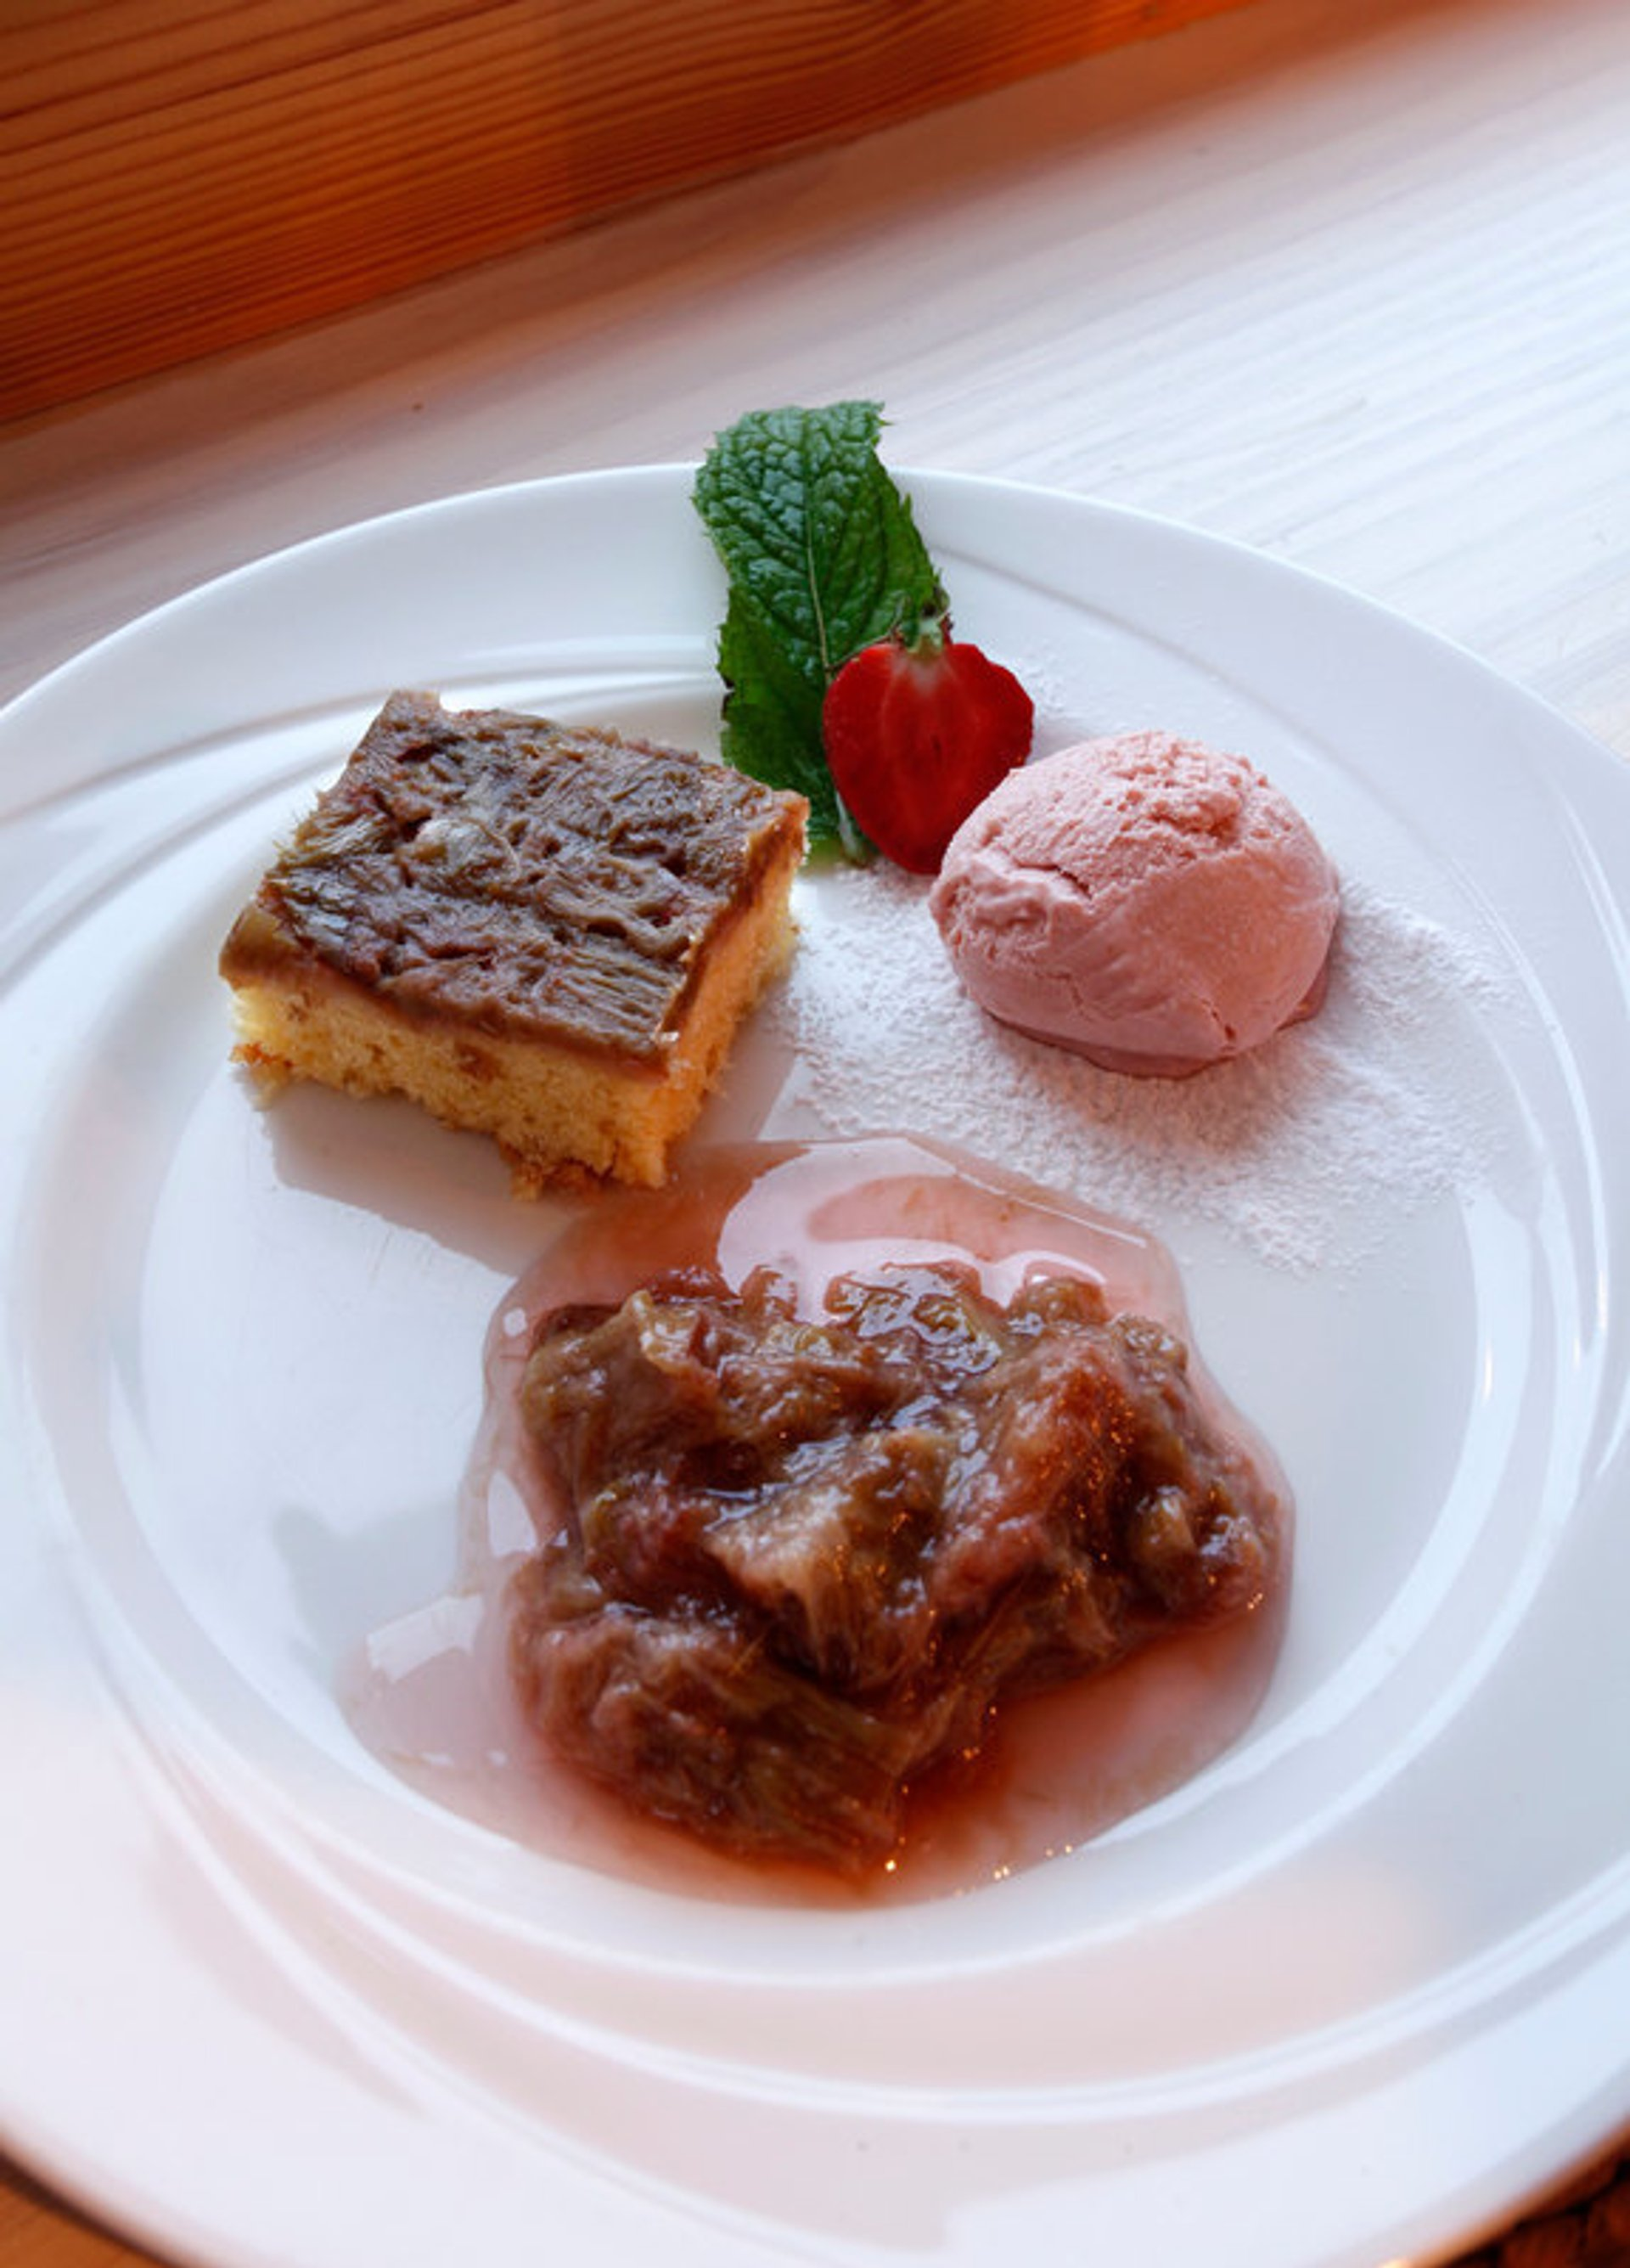 Rhubarb Three Ways : Rhubarb Upside Down Pudding, Rhubarb and Ginger Ice Cream and Rhubarb Compote 2020